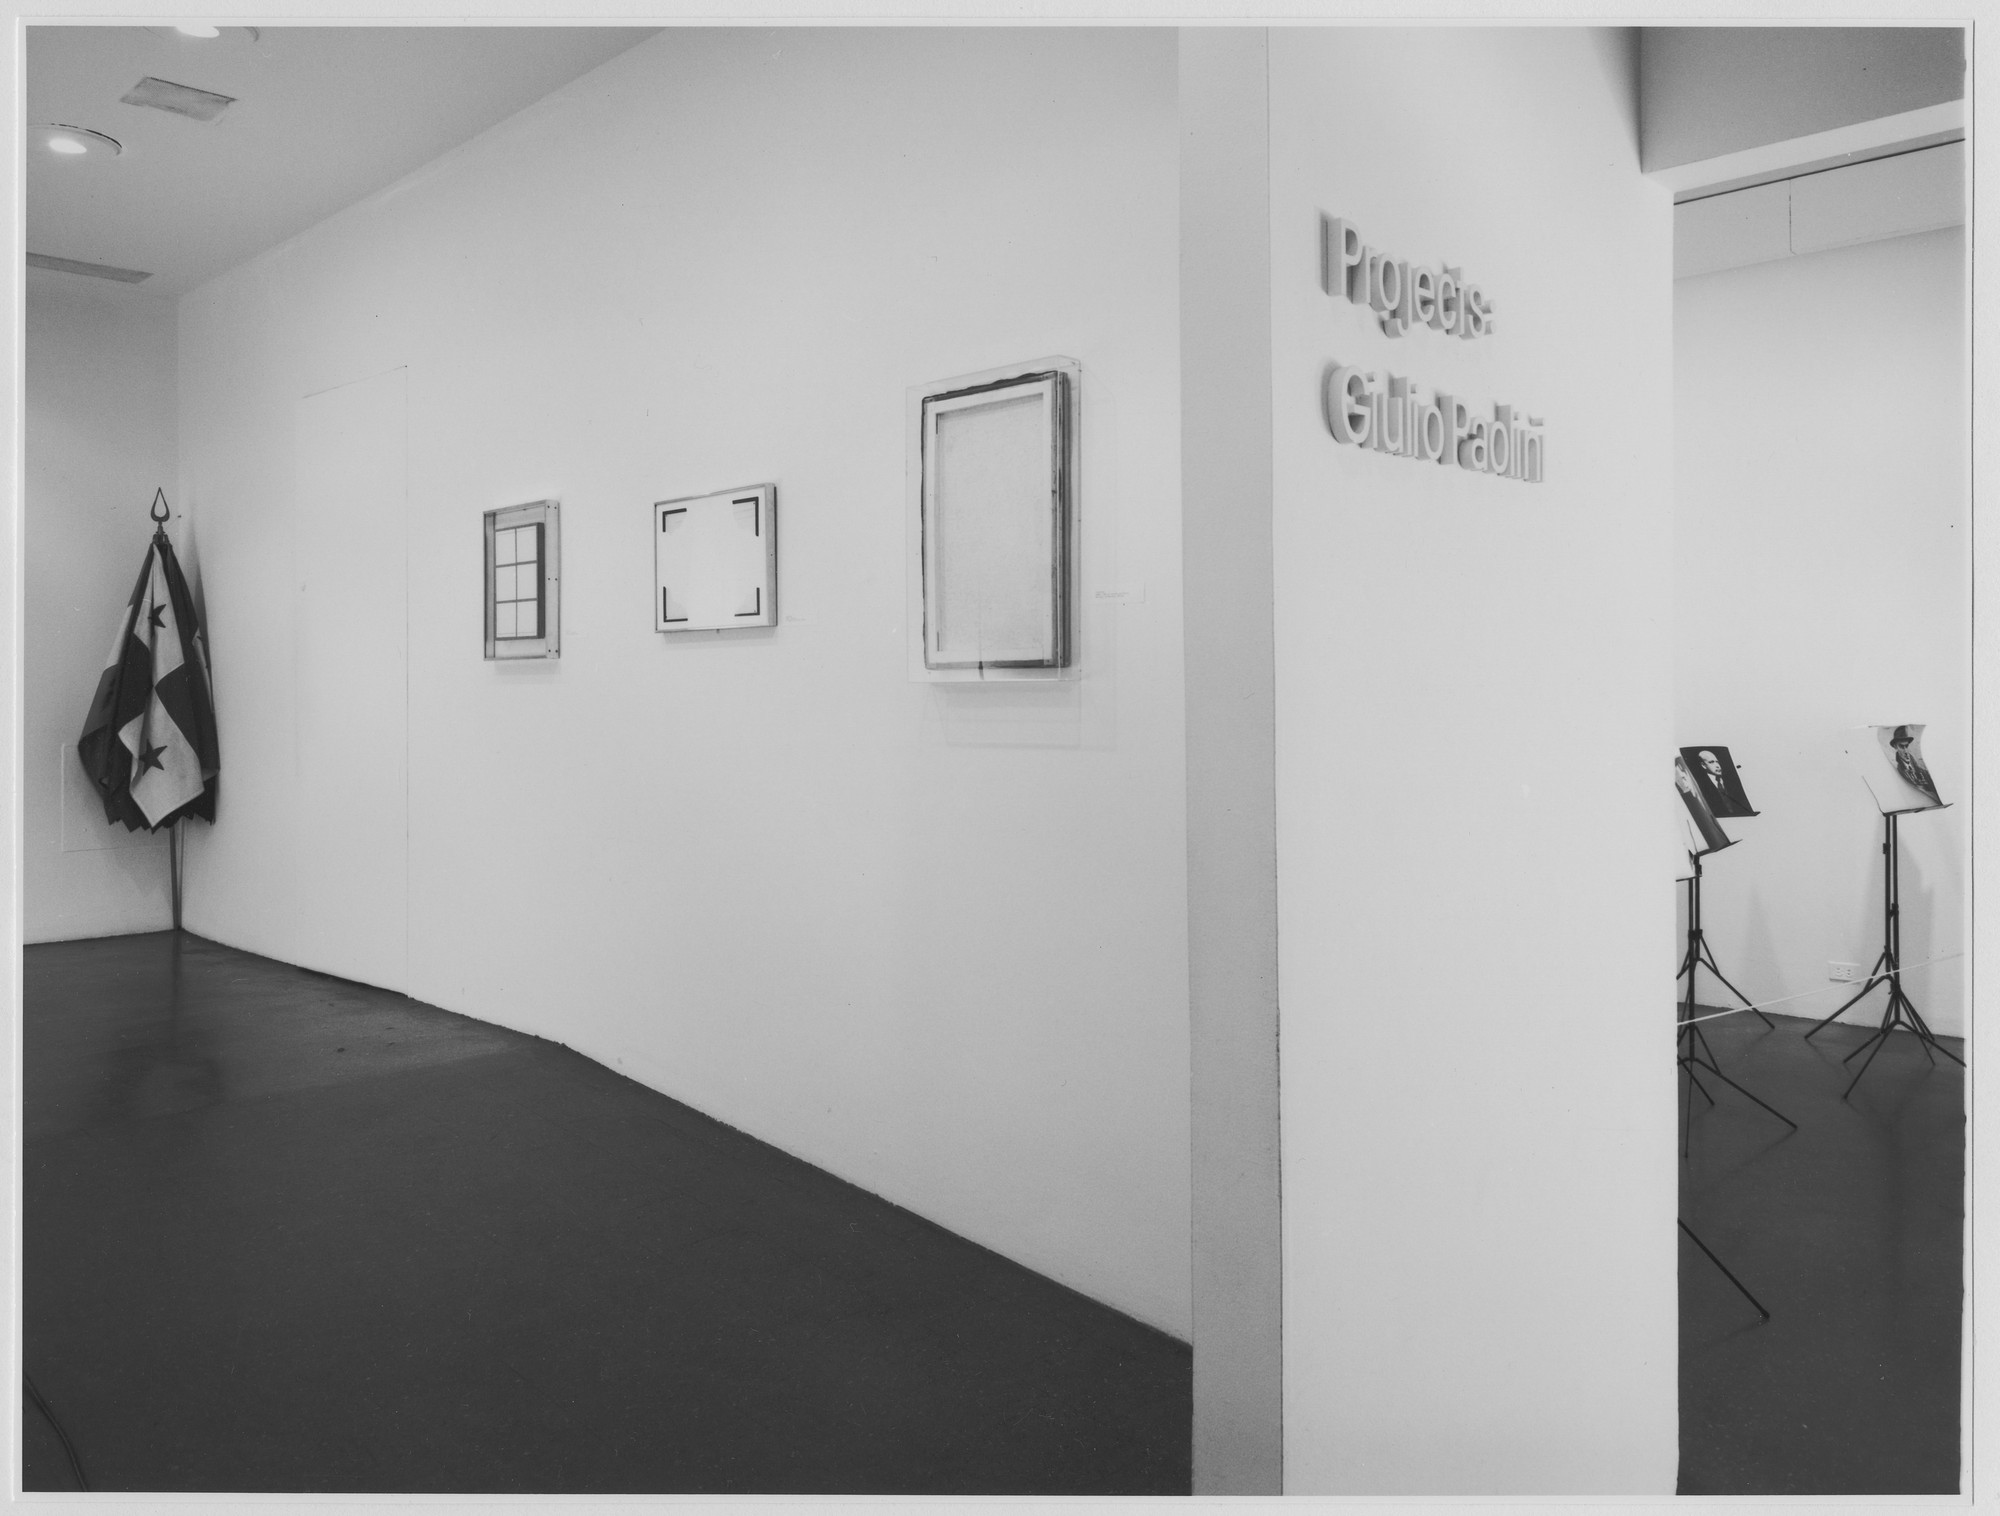 "Installation view of the exhibition, ""Projects: Giulio Paolini."" March 13, 1974–April 14, 1974. Photographic Archive. The Museum of Modern Art Archives, New York. IN1056.1. Photograph by Katherine Keller."